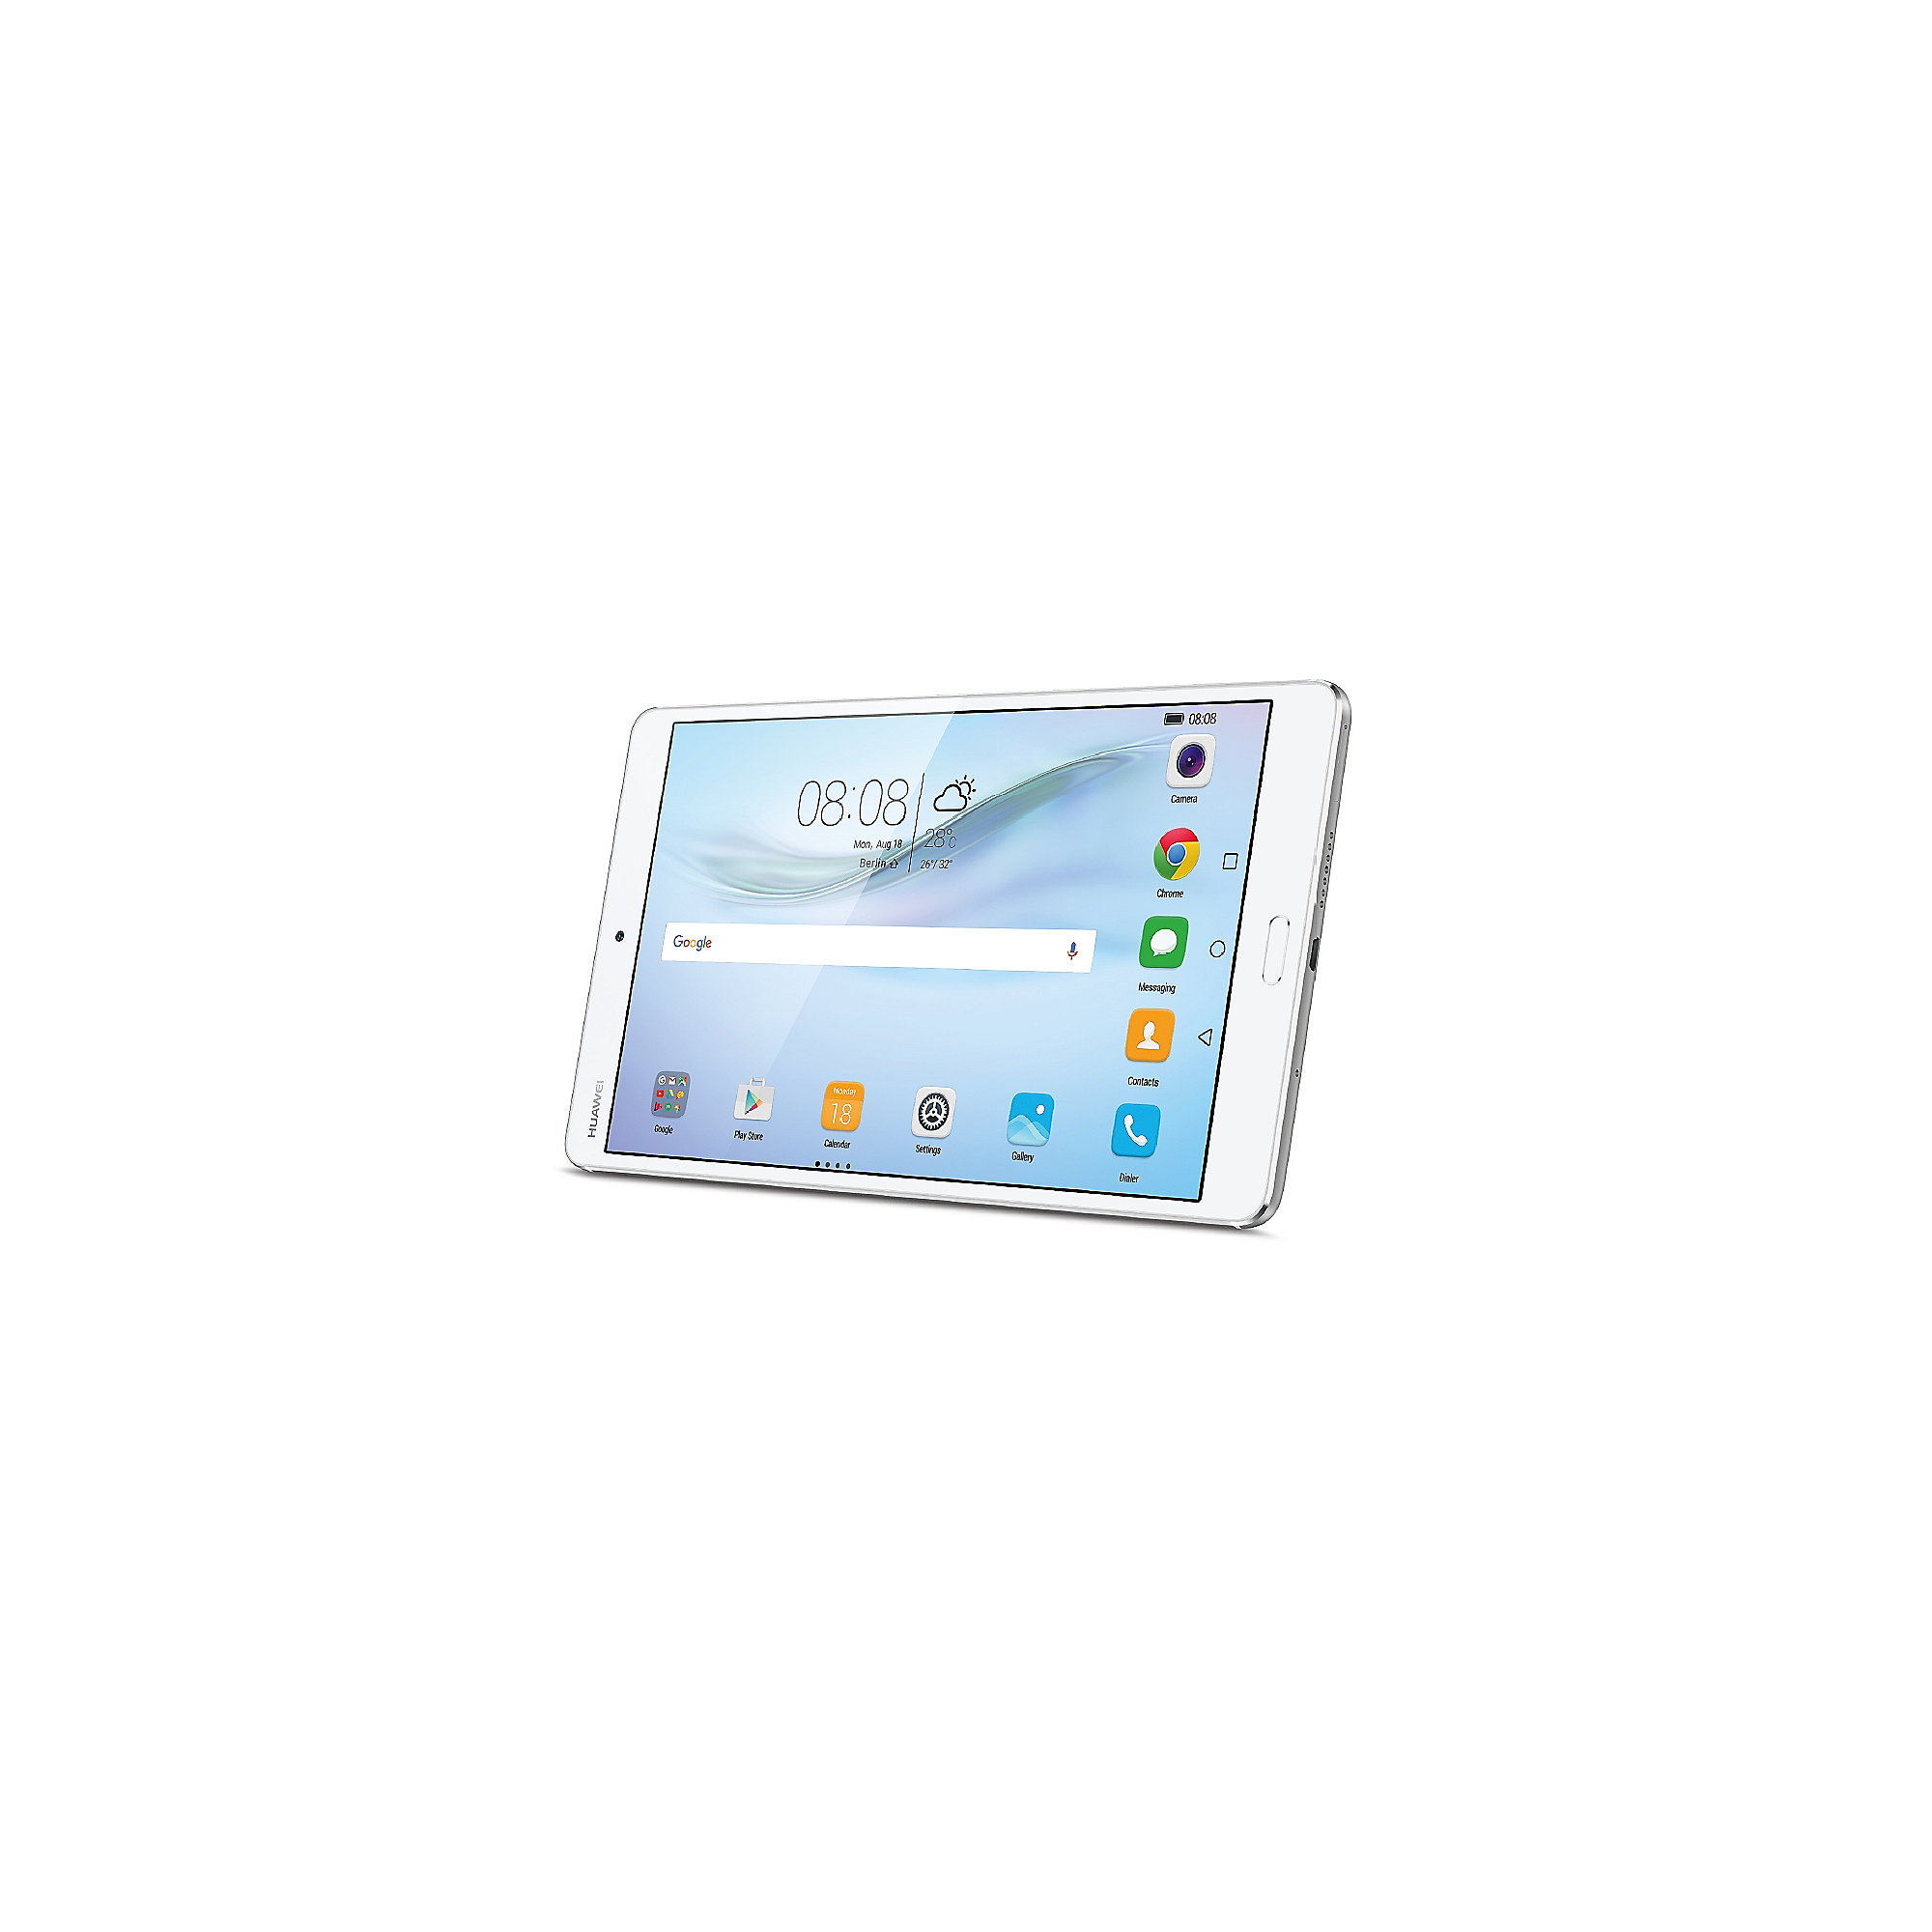 HUAWEI MediaPad M3 Tablet WiFi 32 GB Android 6.0 silber